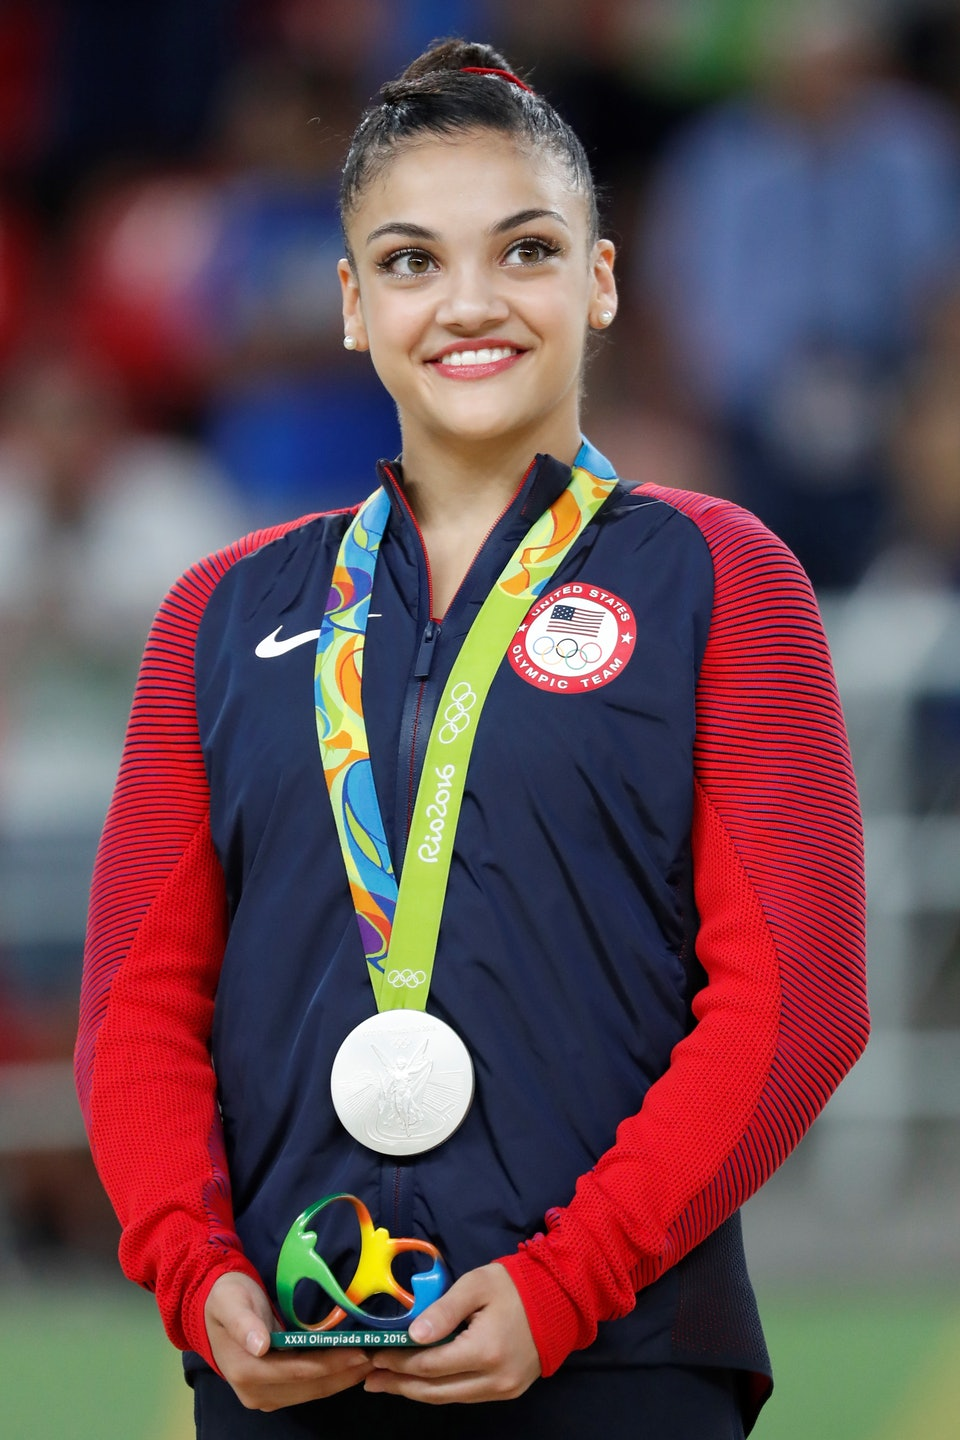 Does Laurie Hernandez Have College Plans The Olympian Just Announced Her First Pro Deal